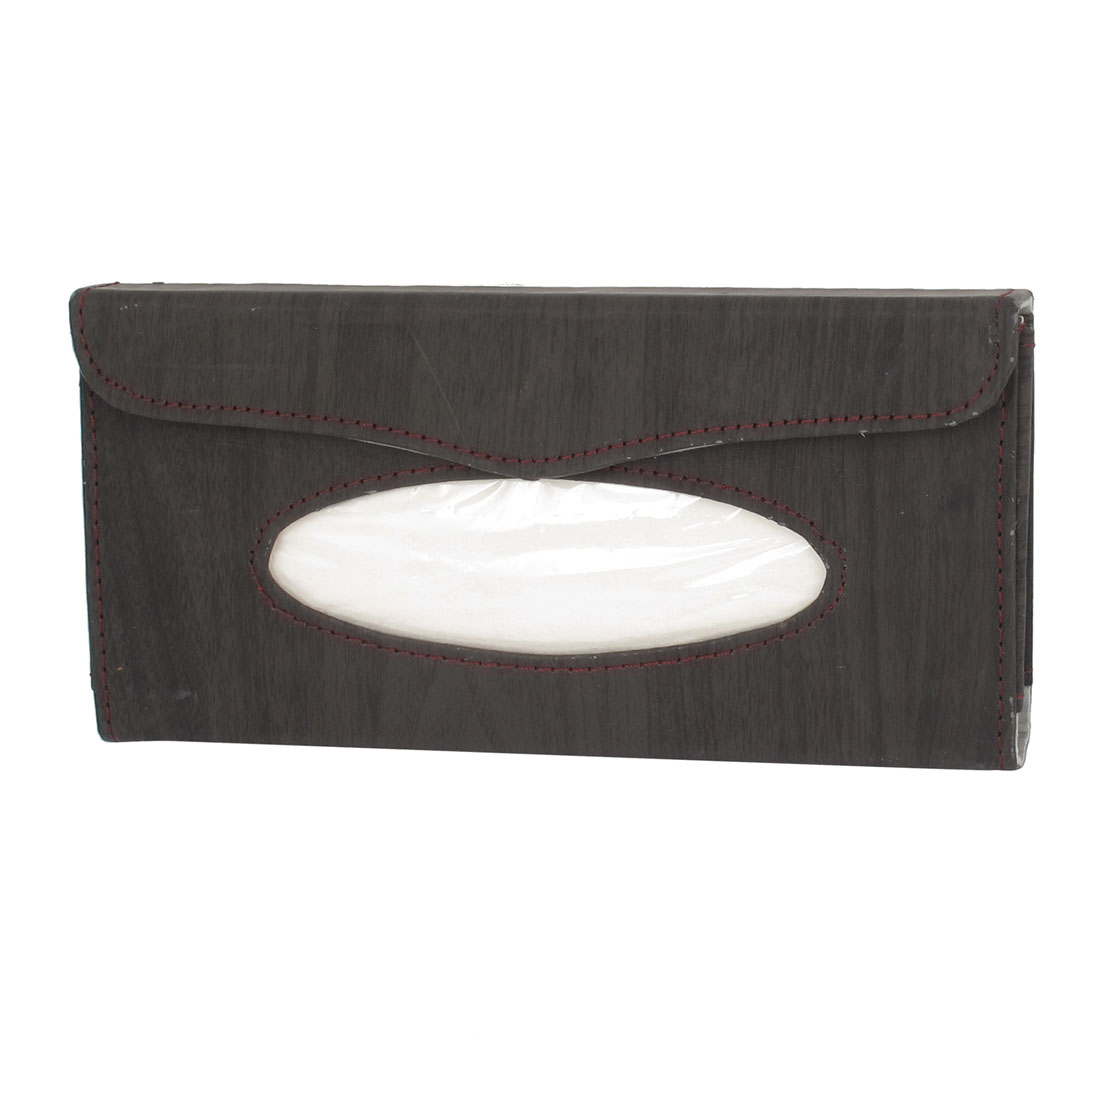 Car Auto Wood Pattern Faux Leather Tissue Napkin Box Case Paper Holder Dark Gray